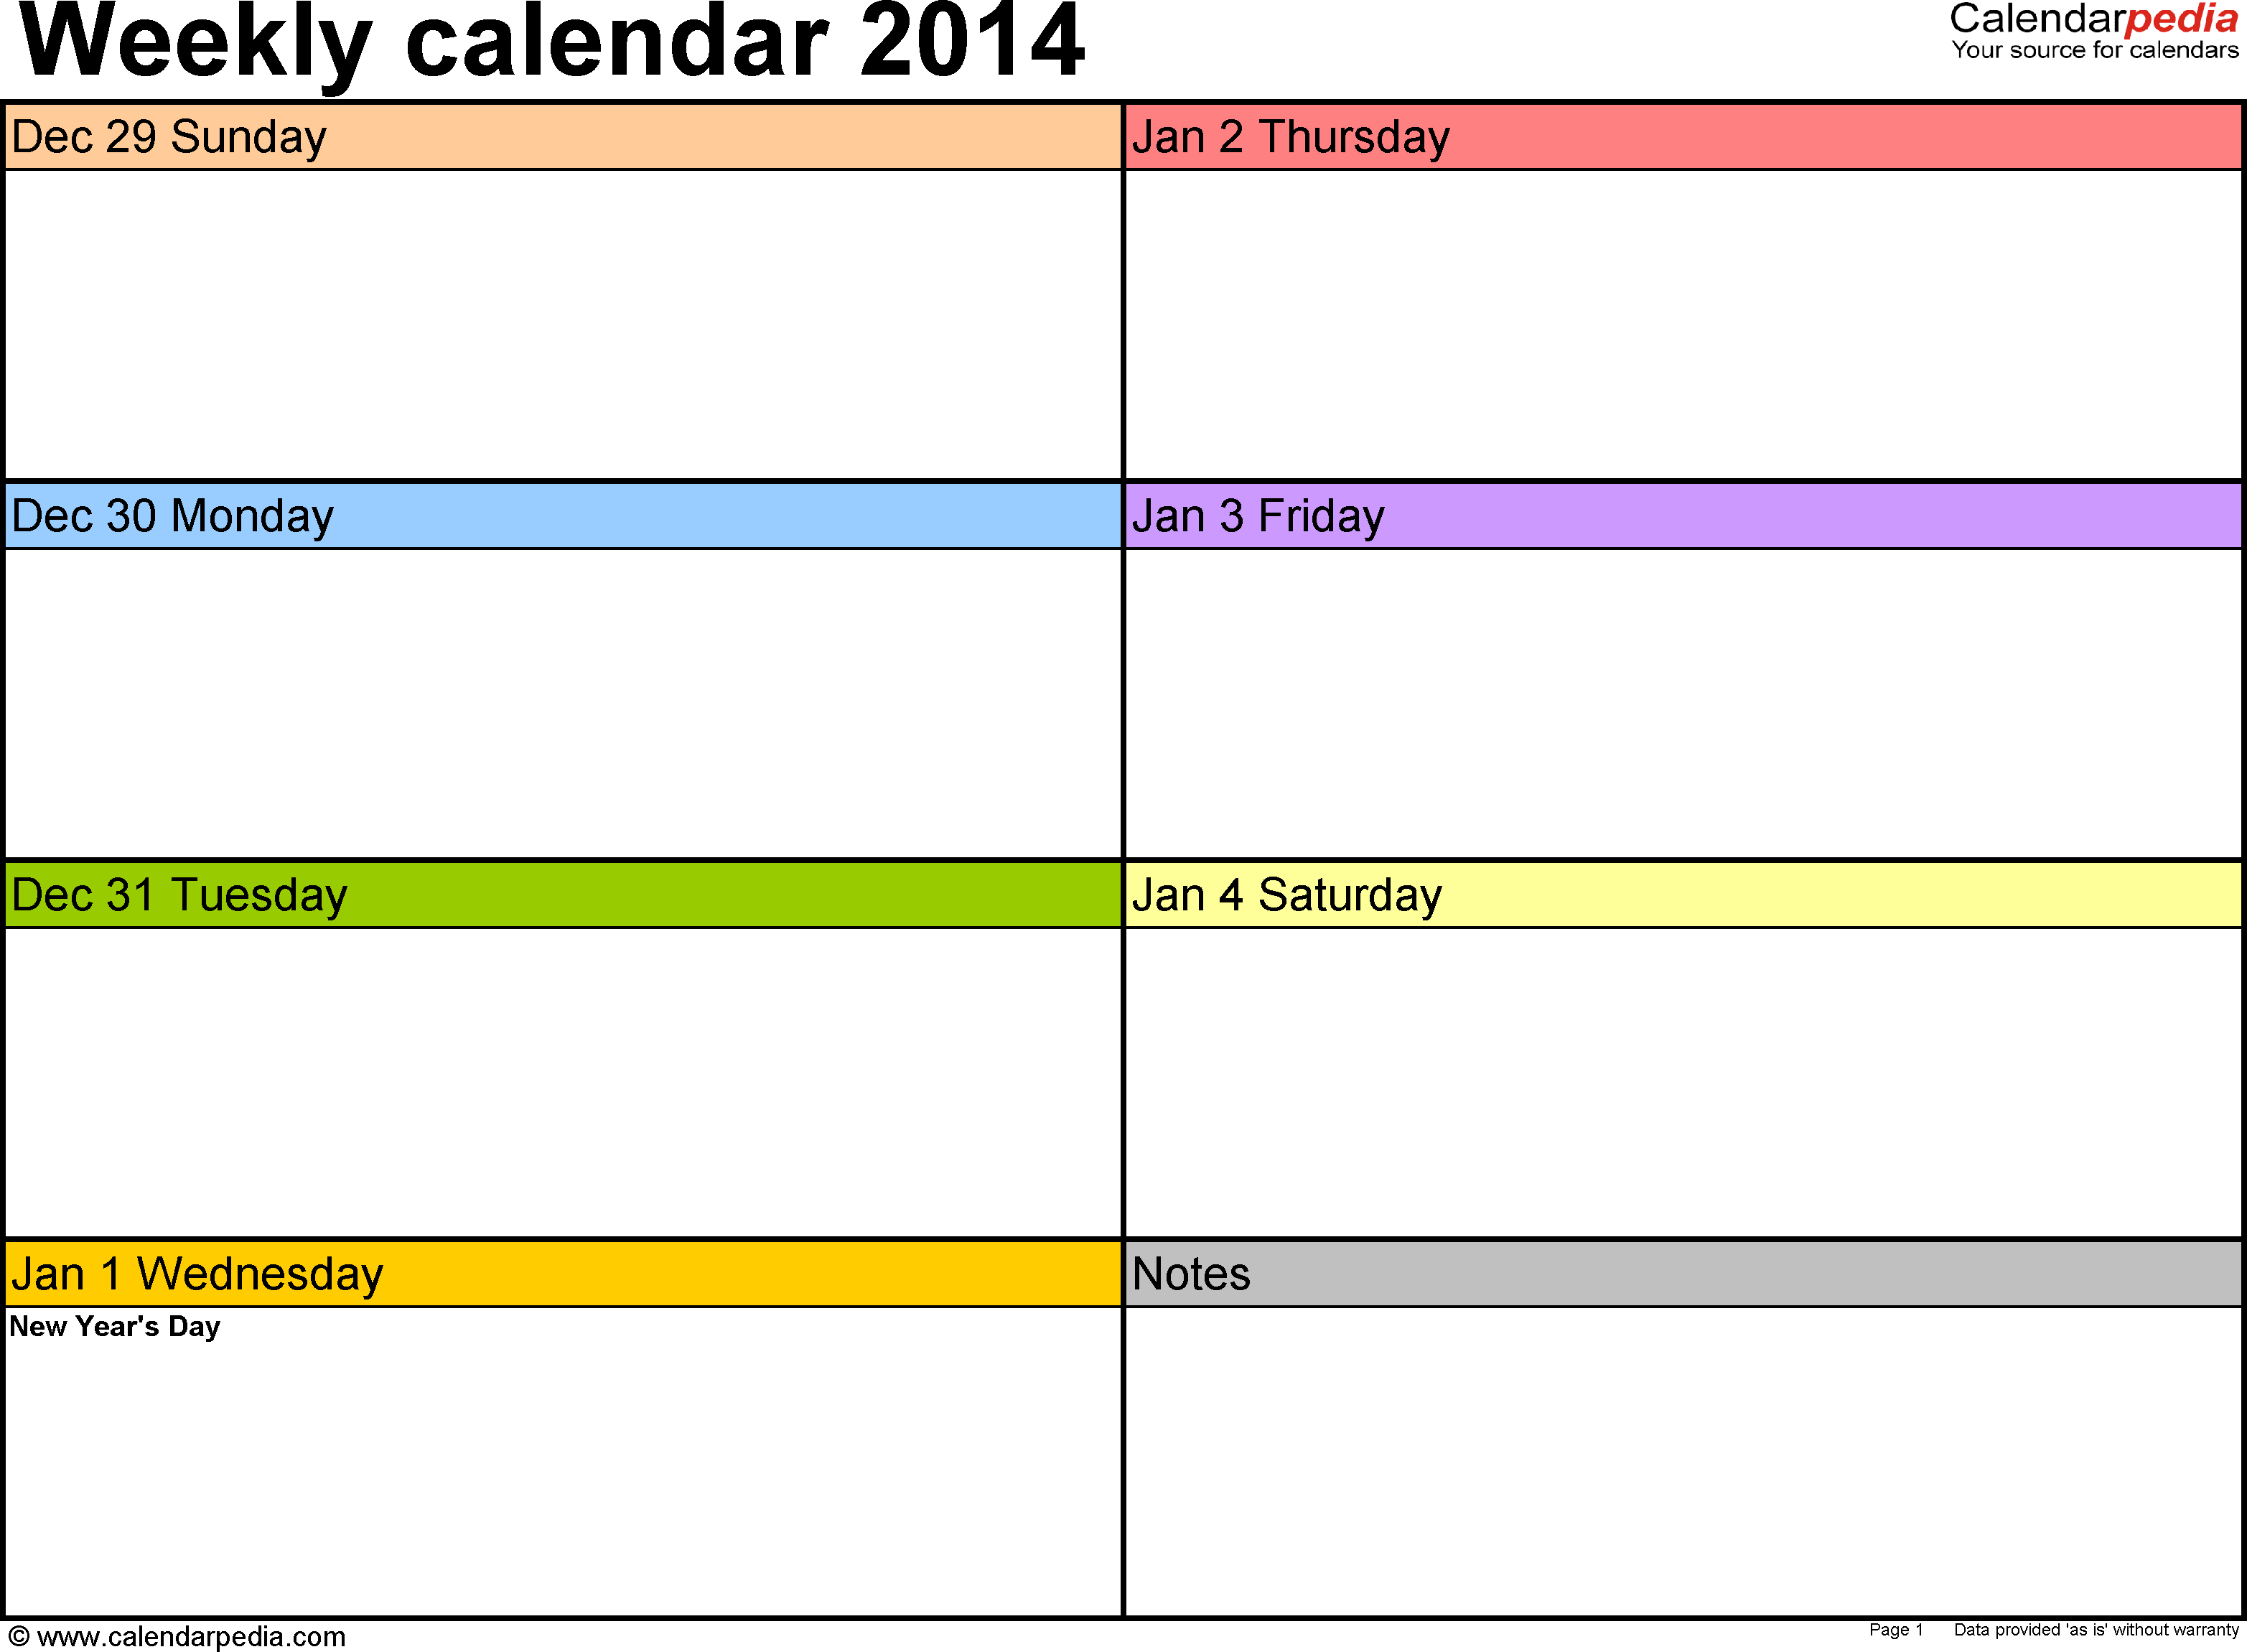 Weekly Calendar 2014 For Word - 4 Free Printable Templates within Monthly Calendar Template Kids